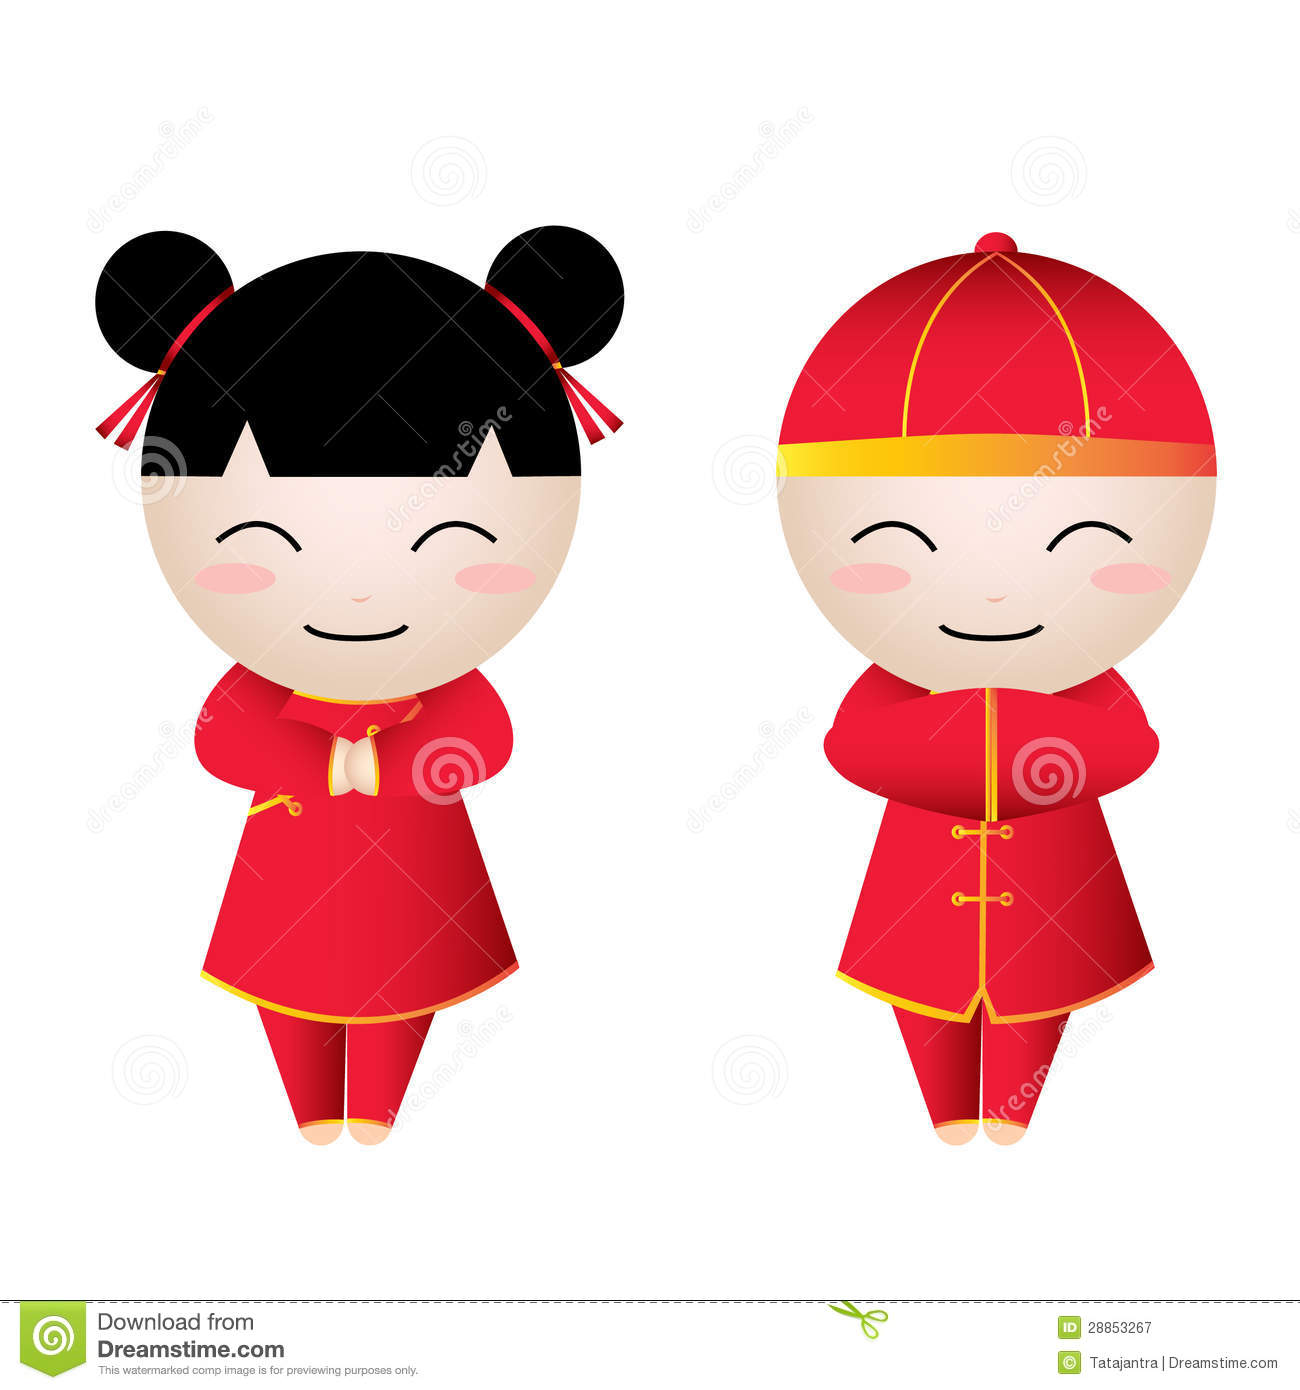 Asians clipart chinese kid #1